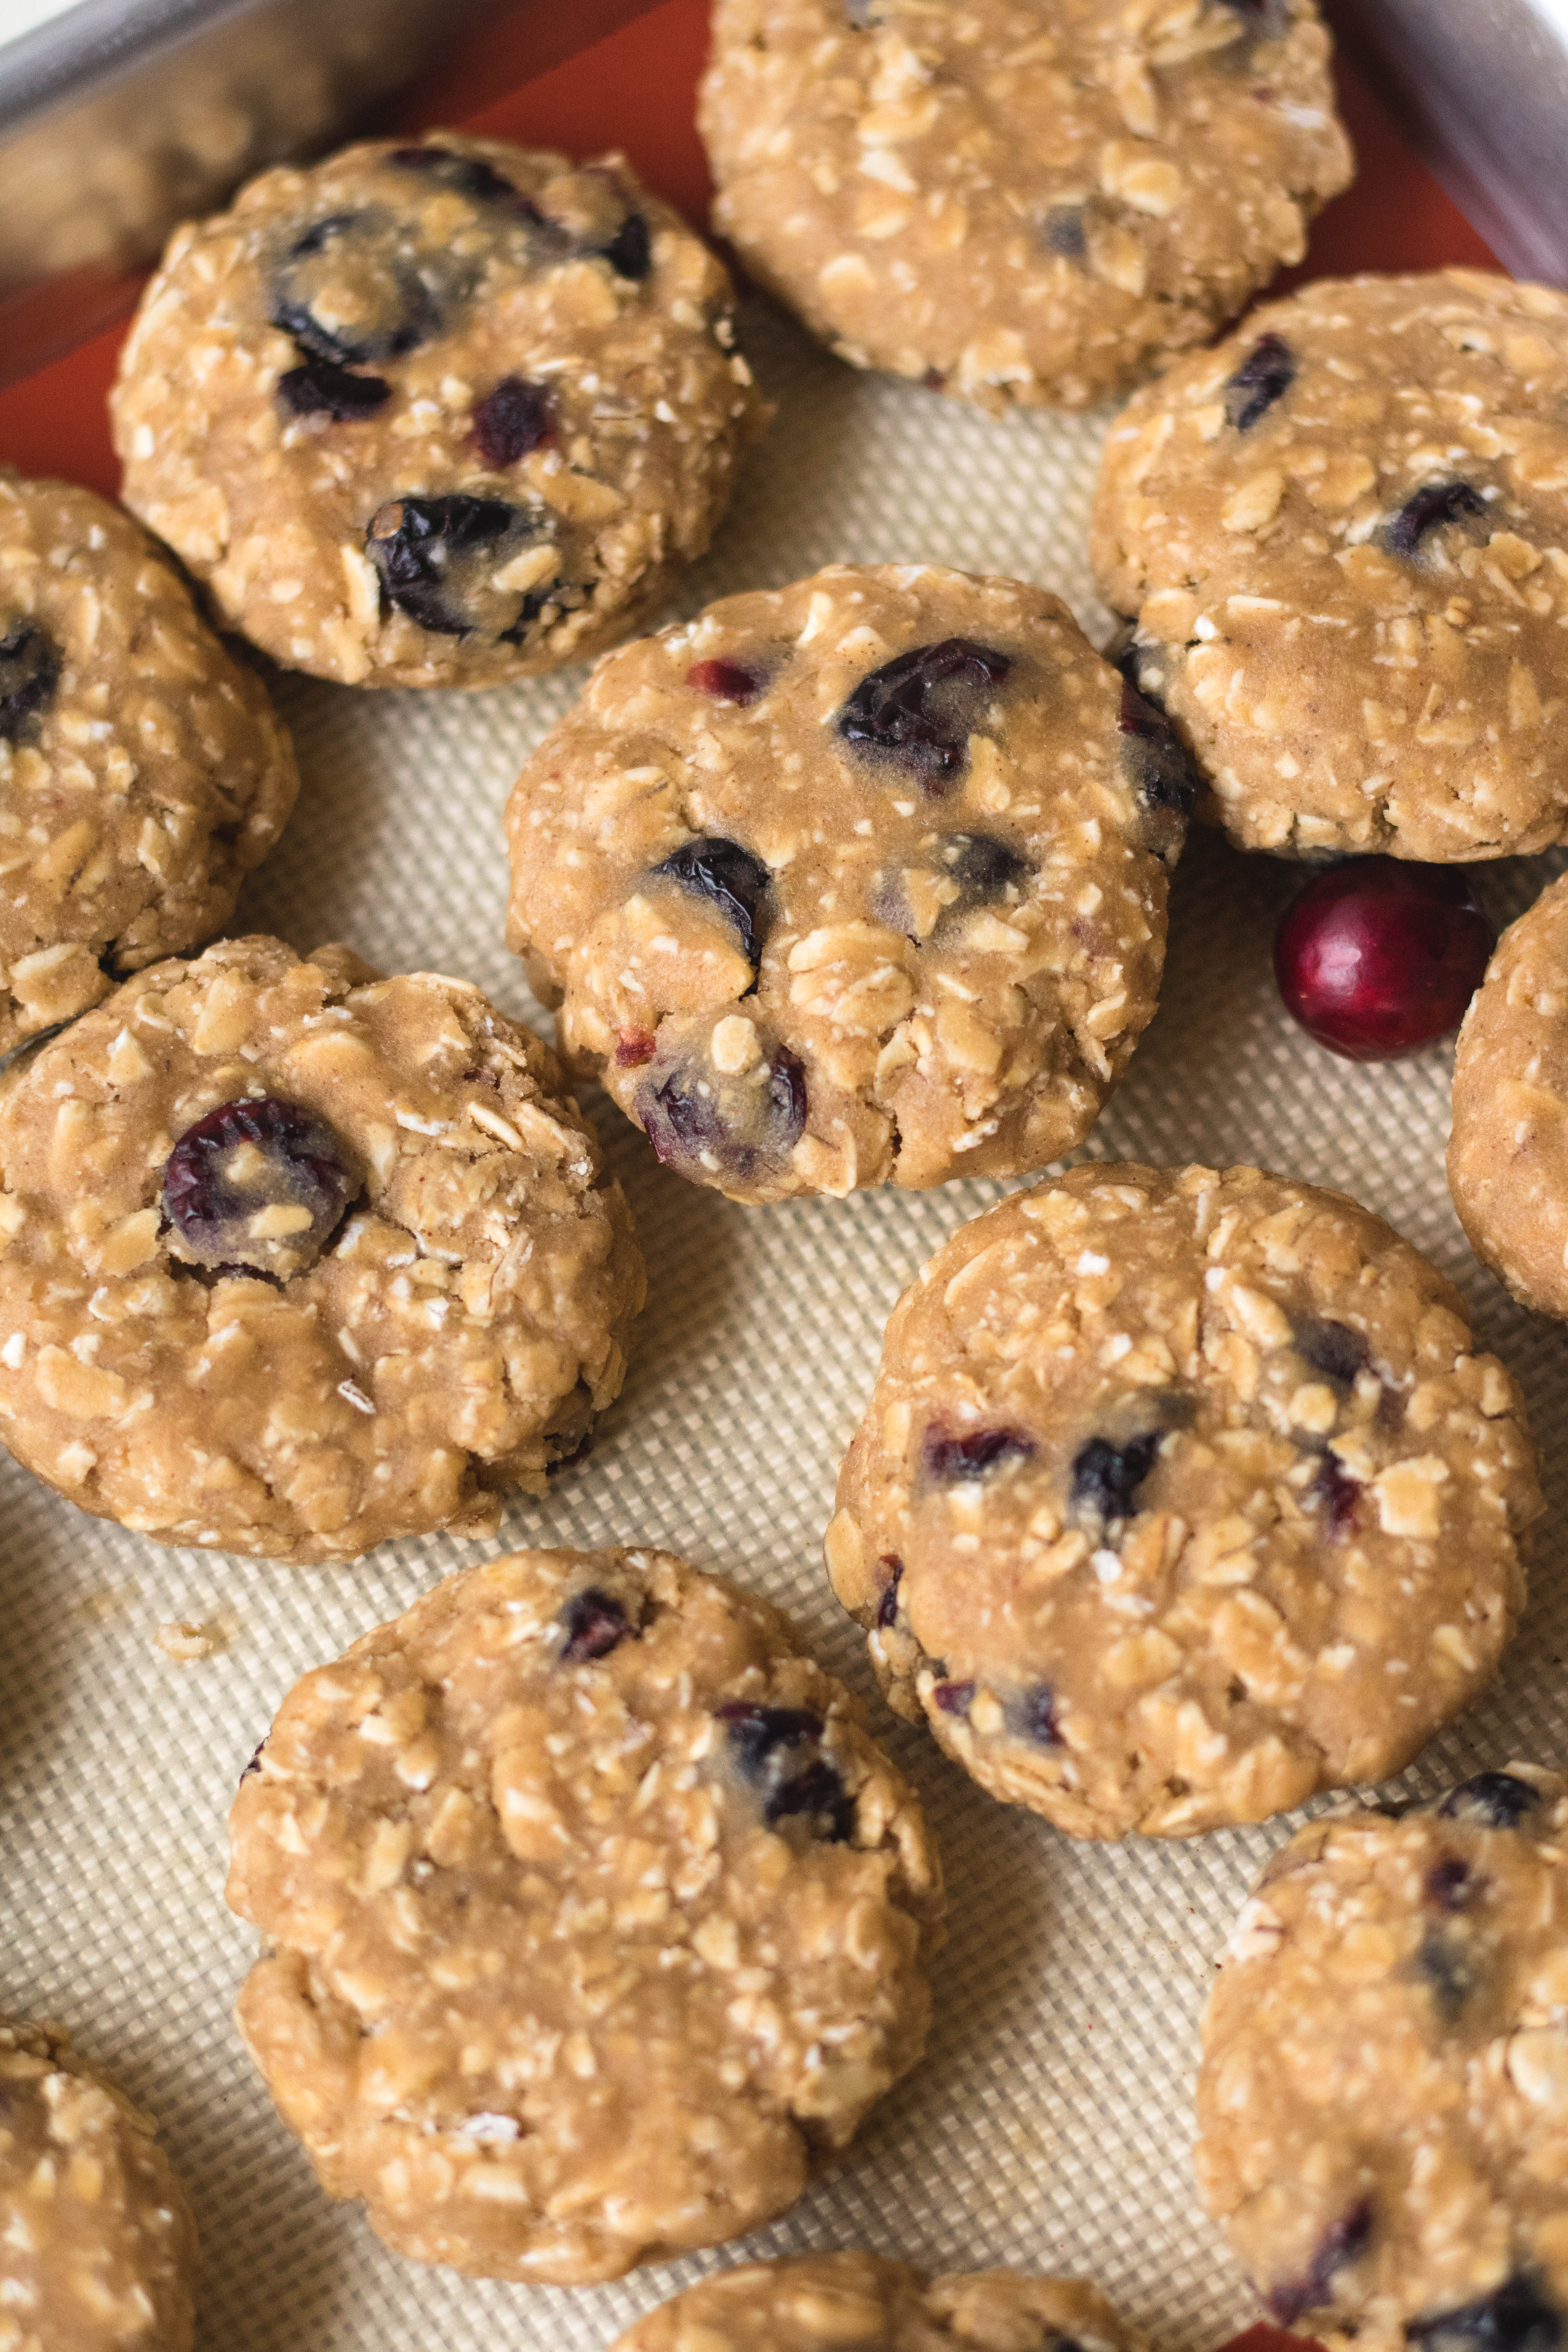 Raw oatmeal cranberry cookies on baking sheet before cooking